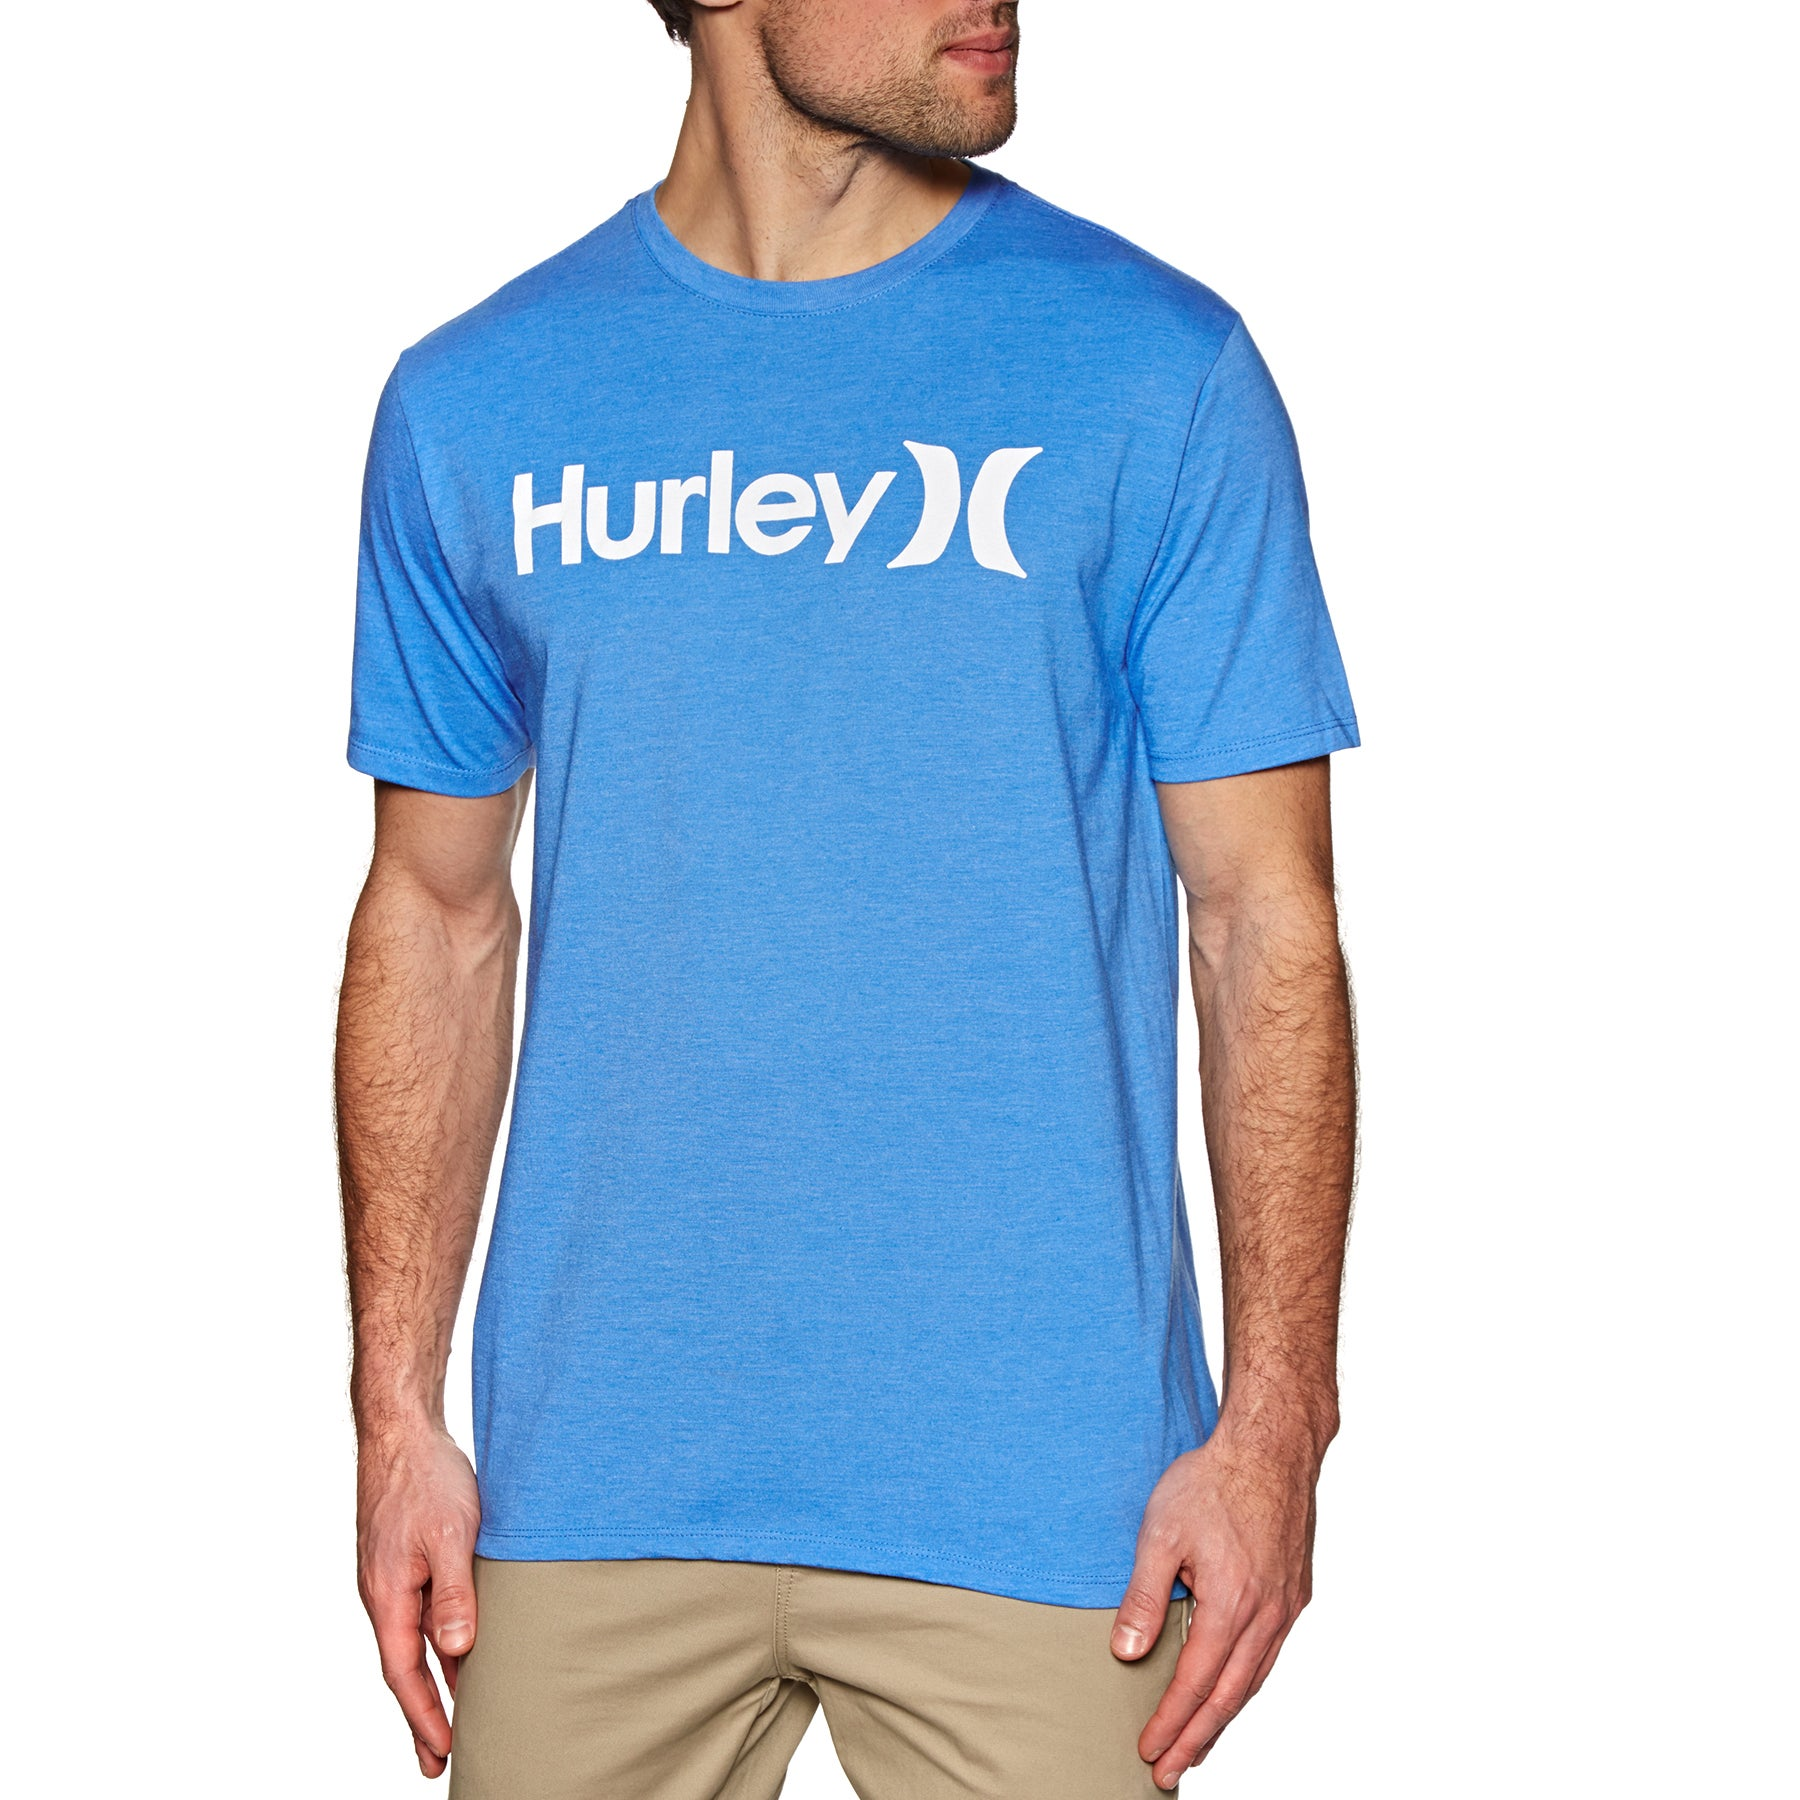 Hurley One And Only Solid Short Sleeve T-Shirt - Lt Photo Blue